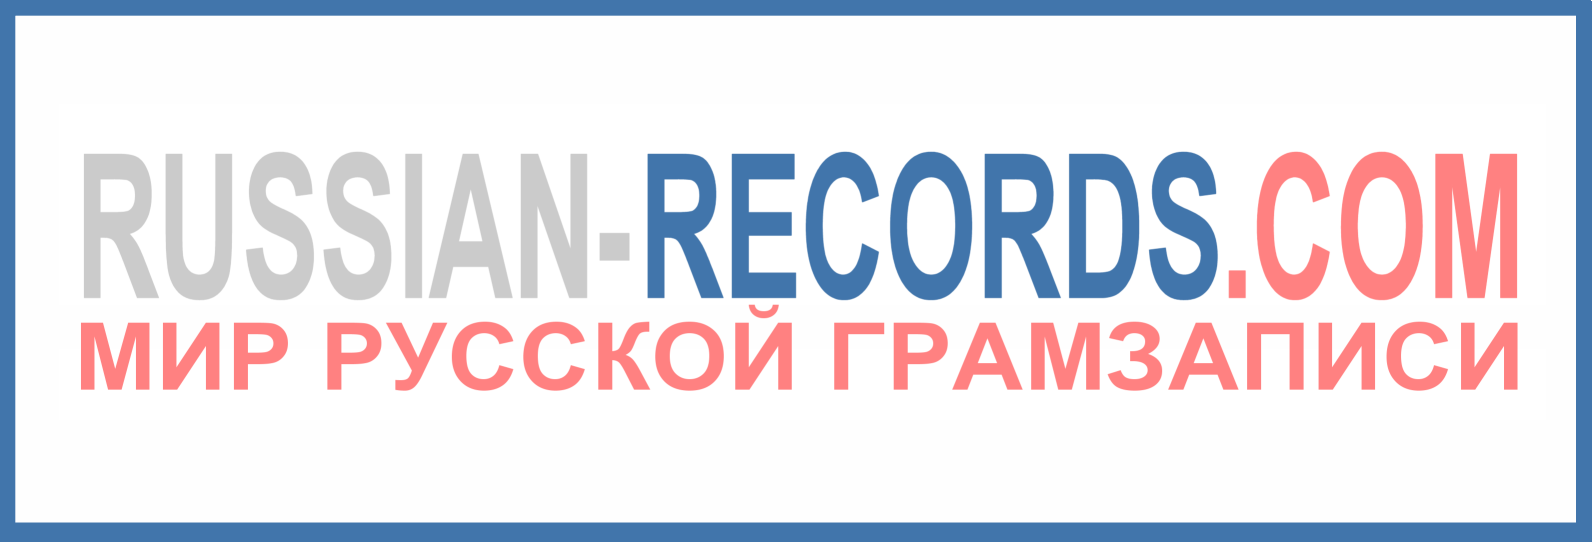 The World of Russian Records